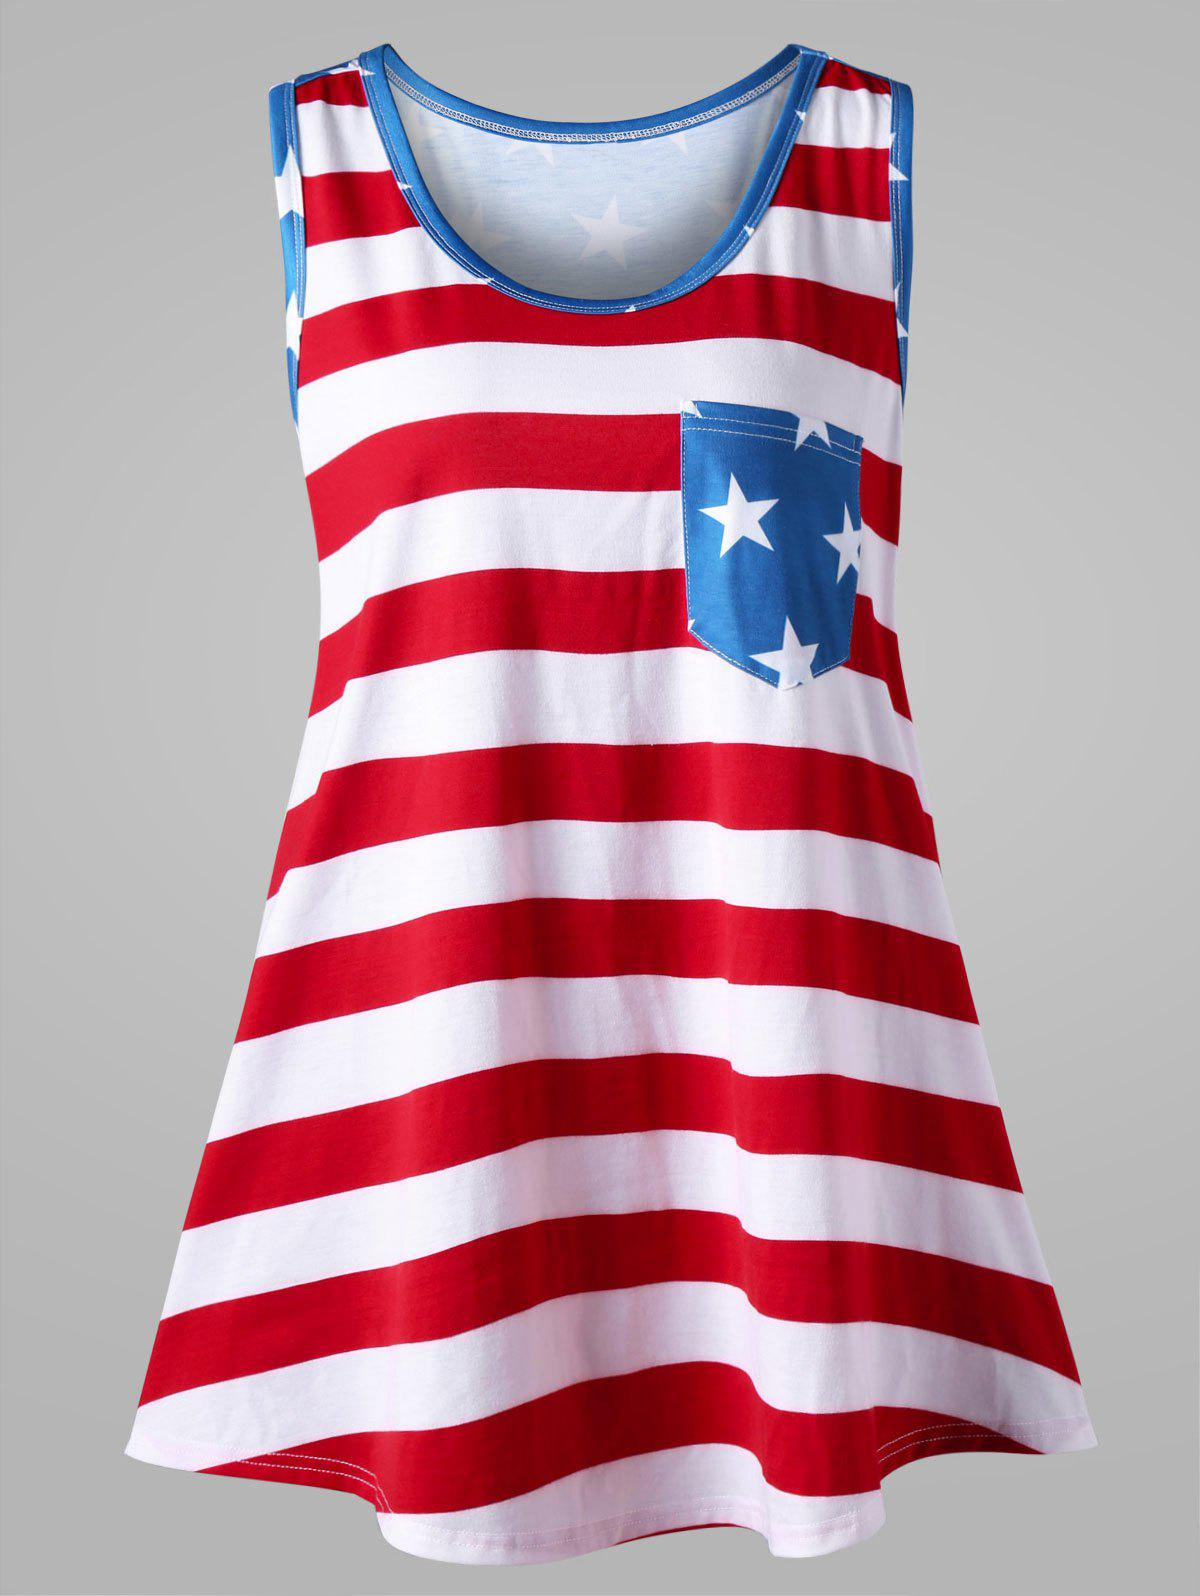 b4437d6a92486 2018 Plus Size American Flag Bowknot Embellished Tank Top COLORMIX ...